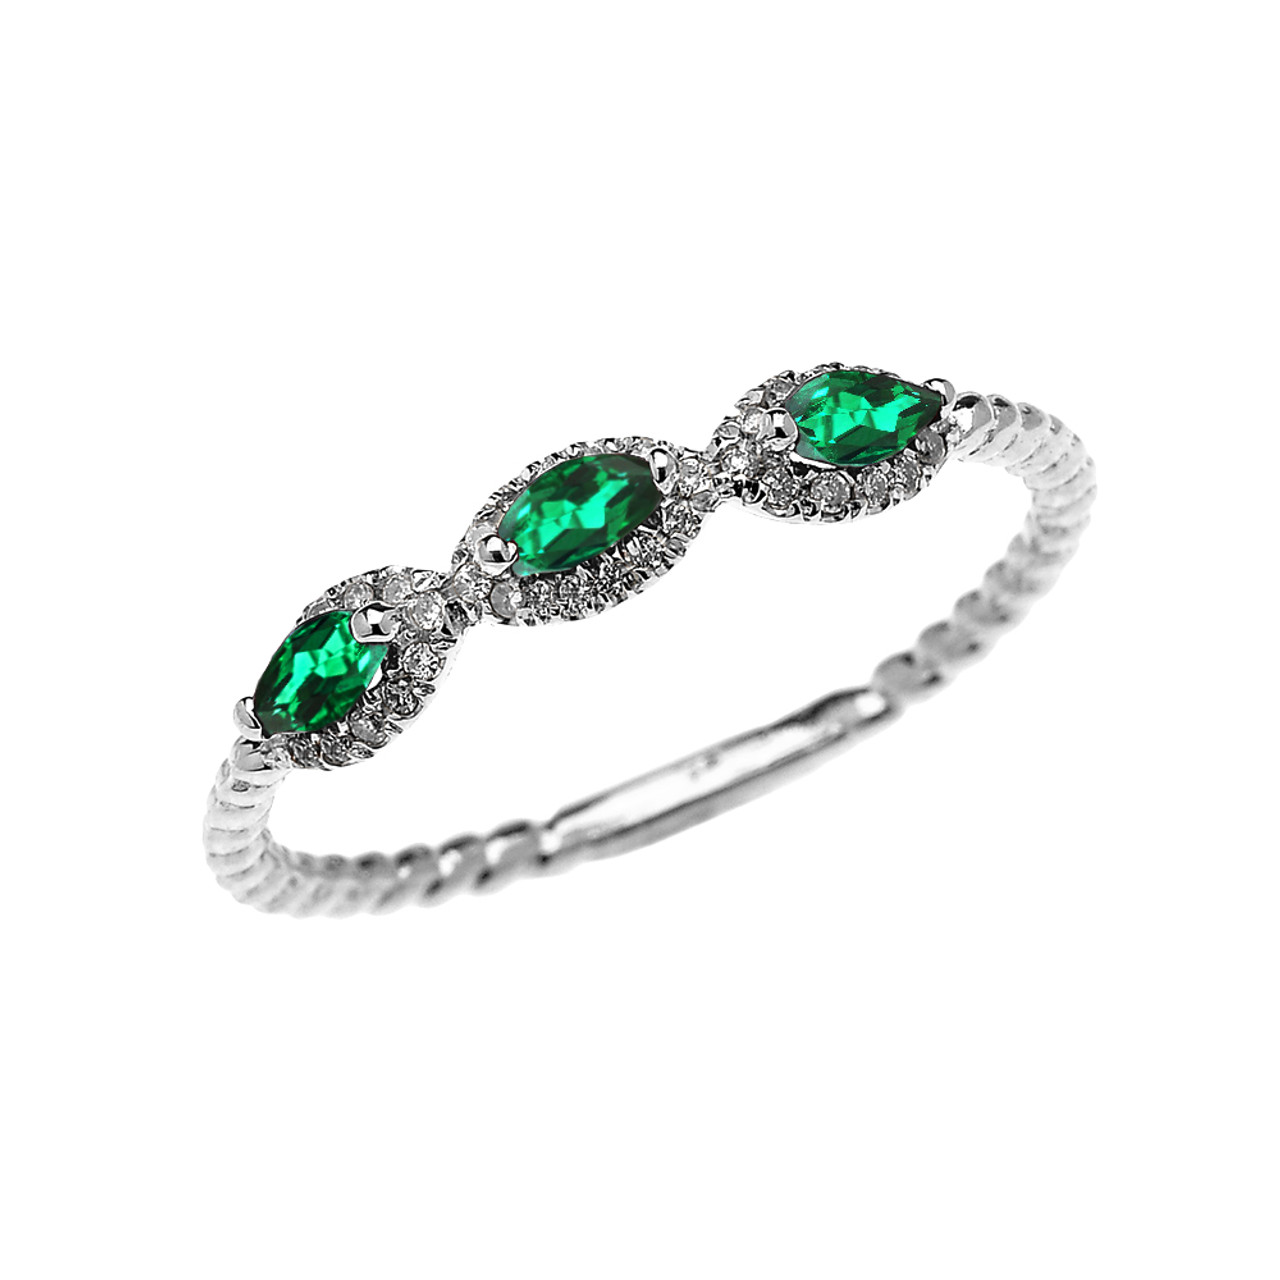 White Gold Dainty Three Stone Emerald And Diamond Rope Design ENGAGEMENTSTACKABLE RING